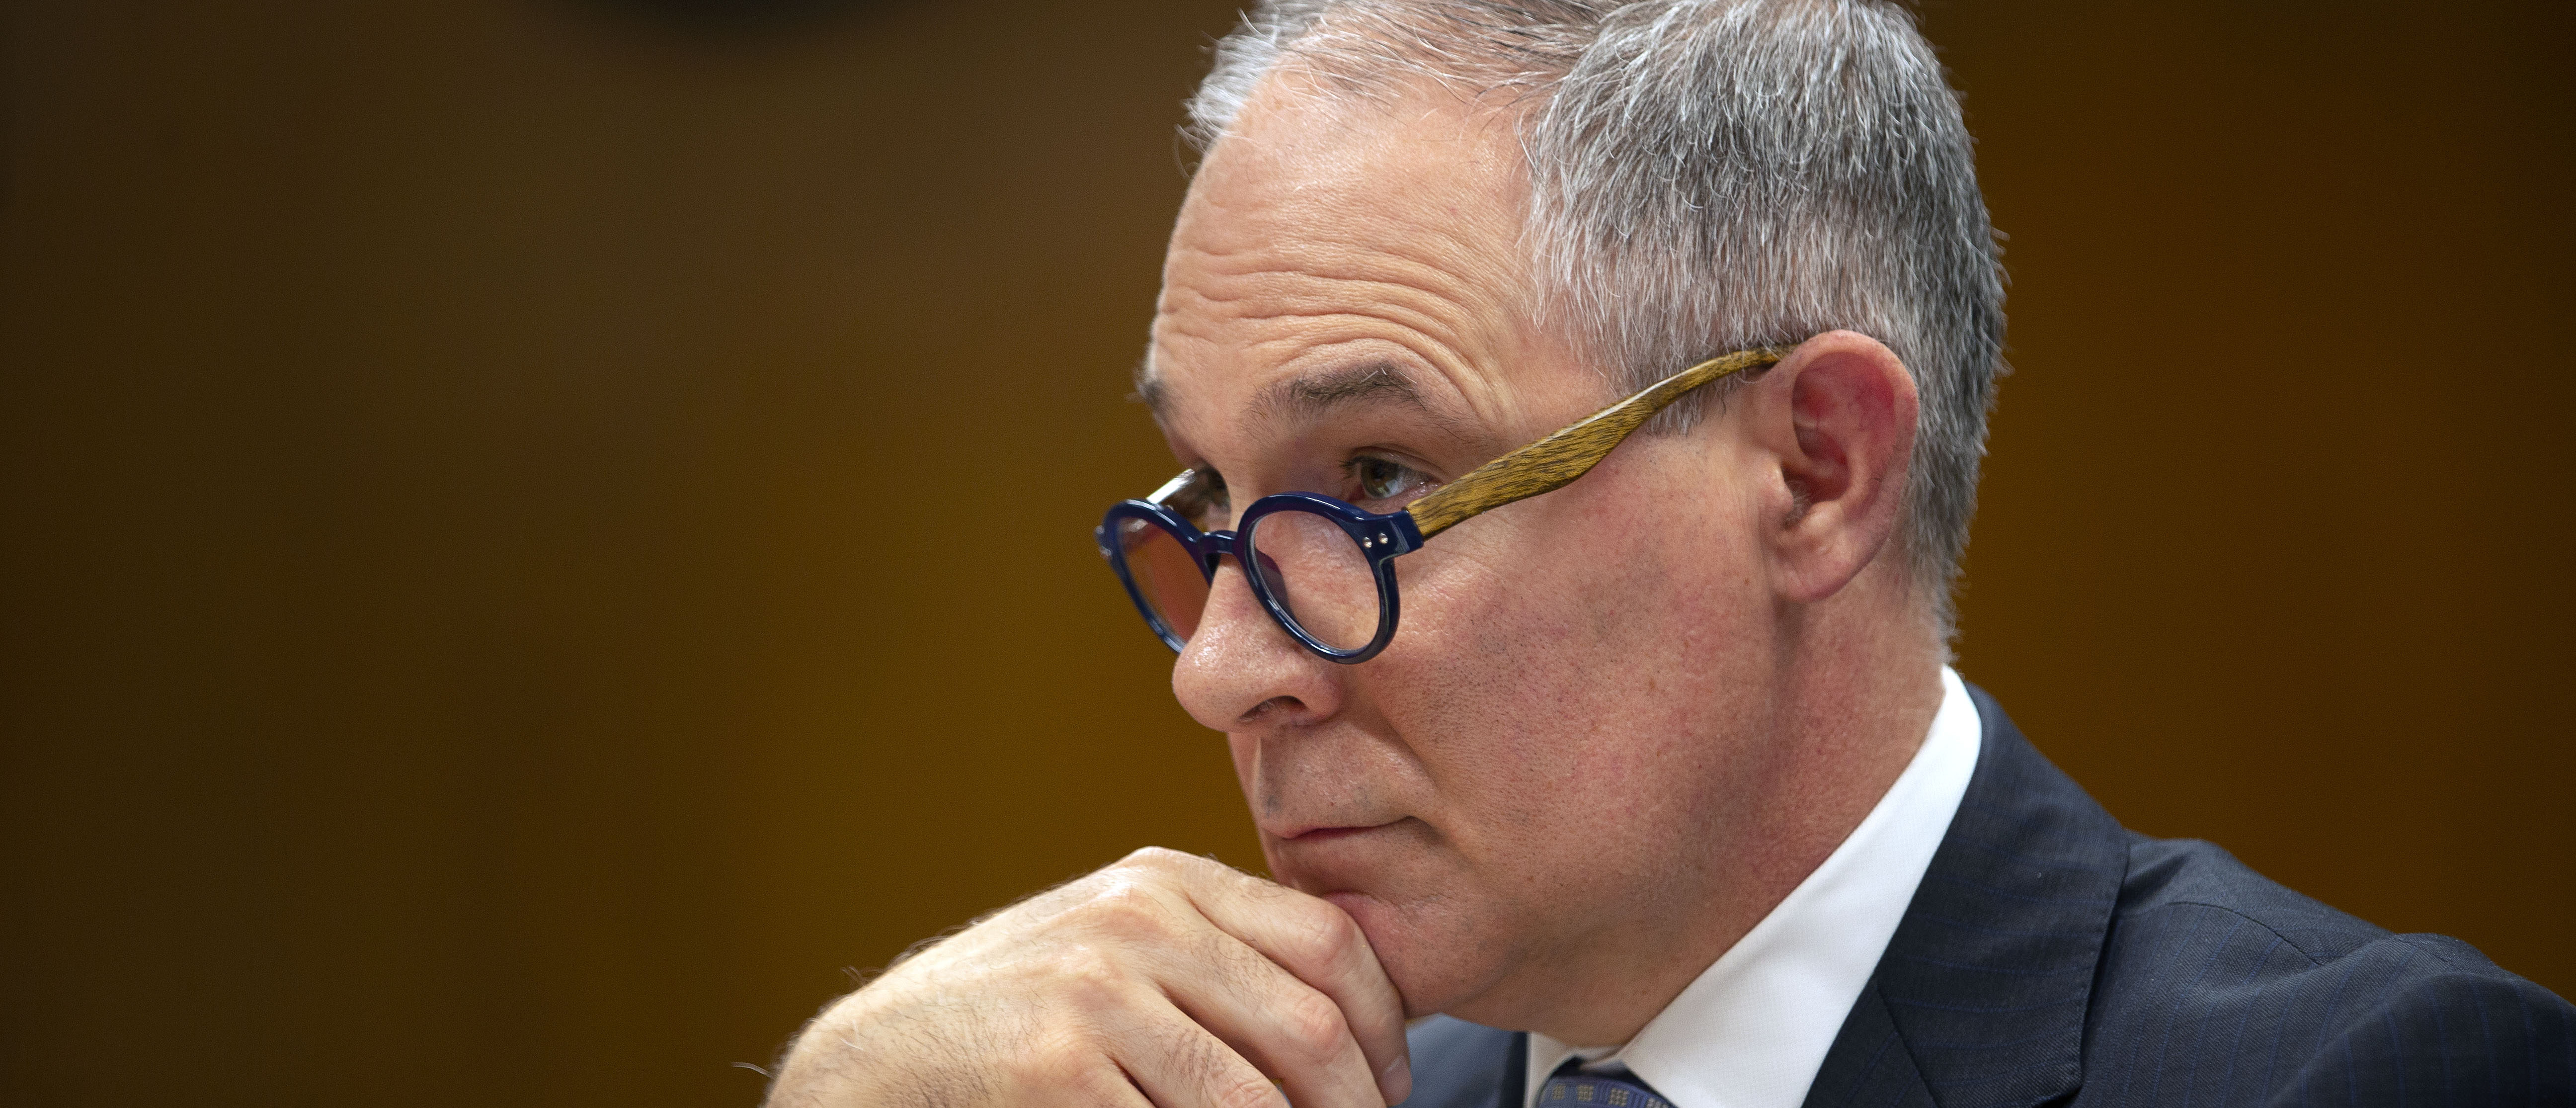 EPA Administrator Scott Pruitt testifies before a Senate Appropriations Interior, Environment, and Related Agencies Subcommittee hearing on the proposed budget estimates and justification for FY2019 for the Environmental Protection Agency on Capitol Hill in Washington, U.S., May 16, 2018. REUTERS/Al Drago - HP1EE5G18KD3U